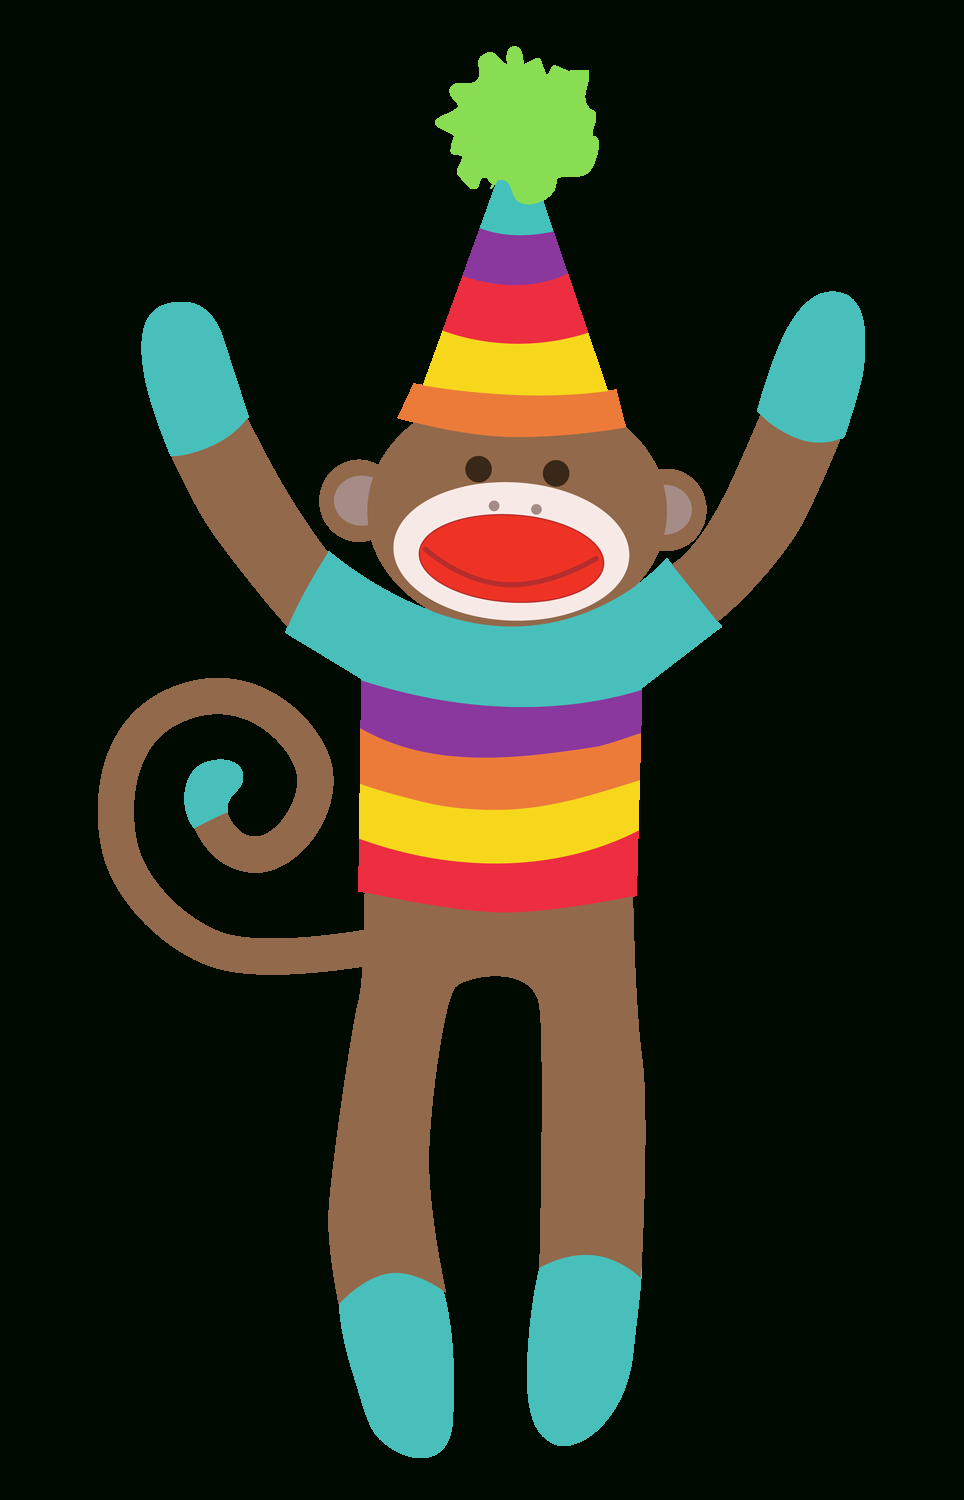 Sock Monkey Clip Art Free Clipart Collection - Free Printable Sock Monkey Clip Art